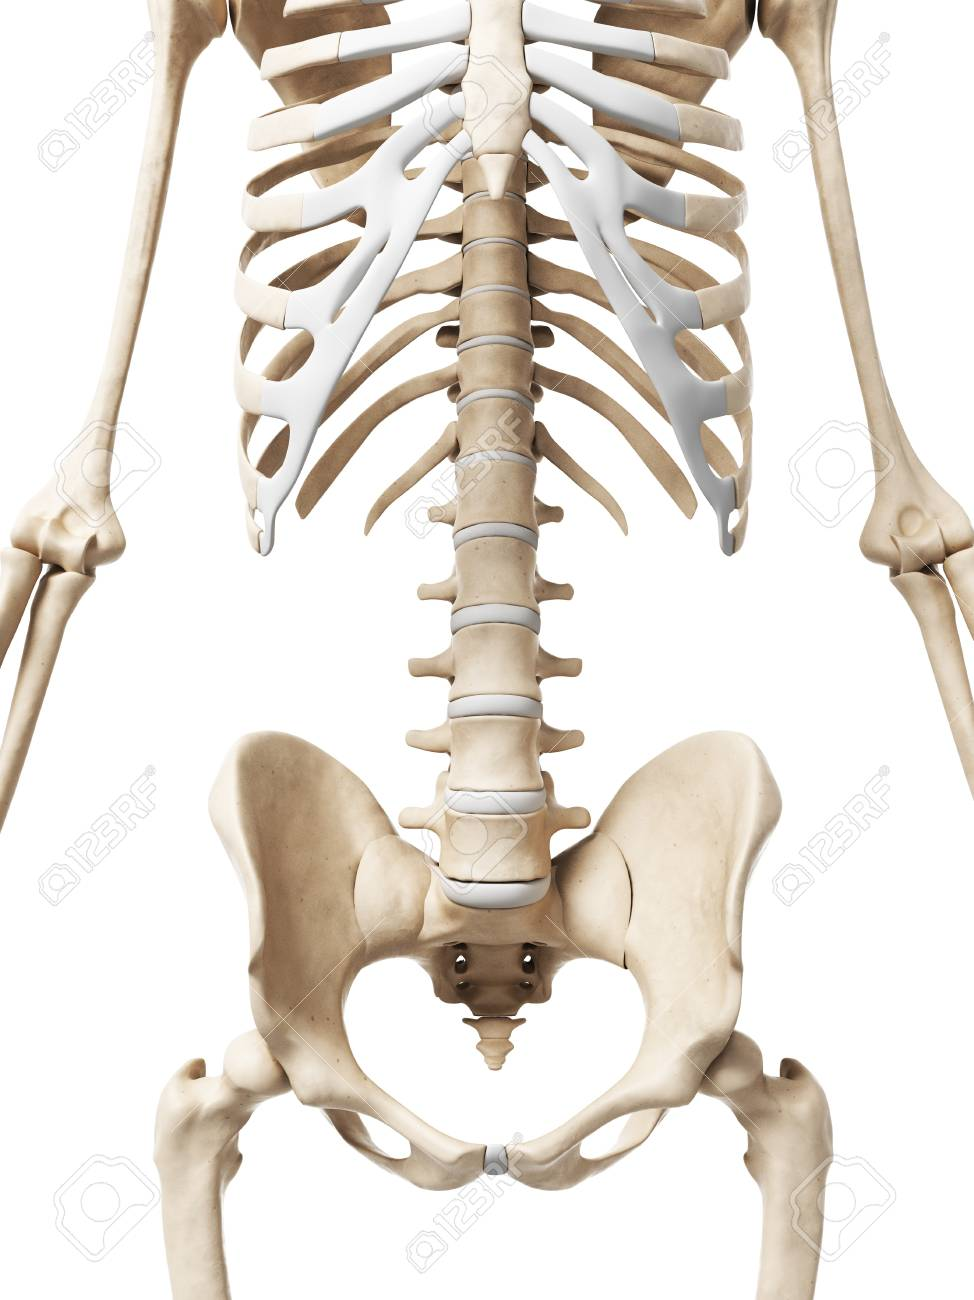 Human Pelvis Computer Artwork Stock Photo Picture And Royalty Free